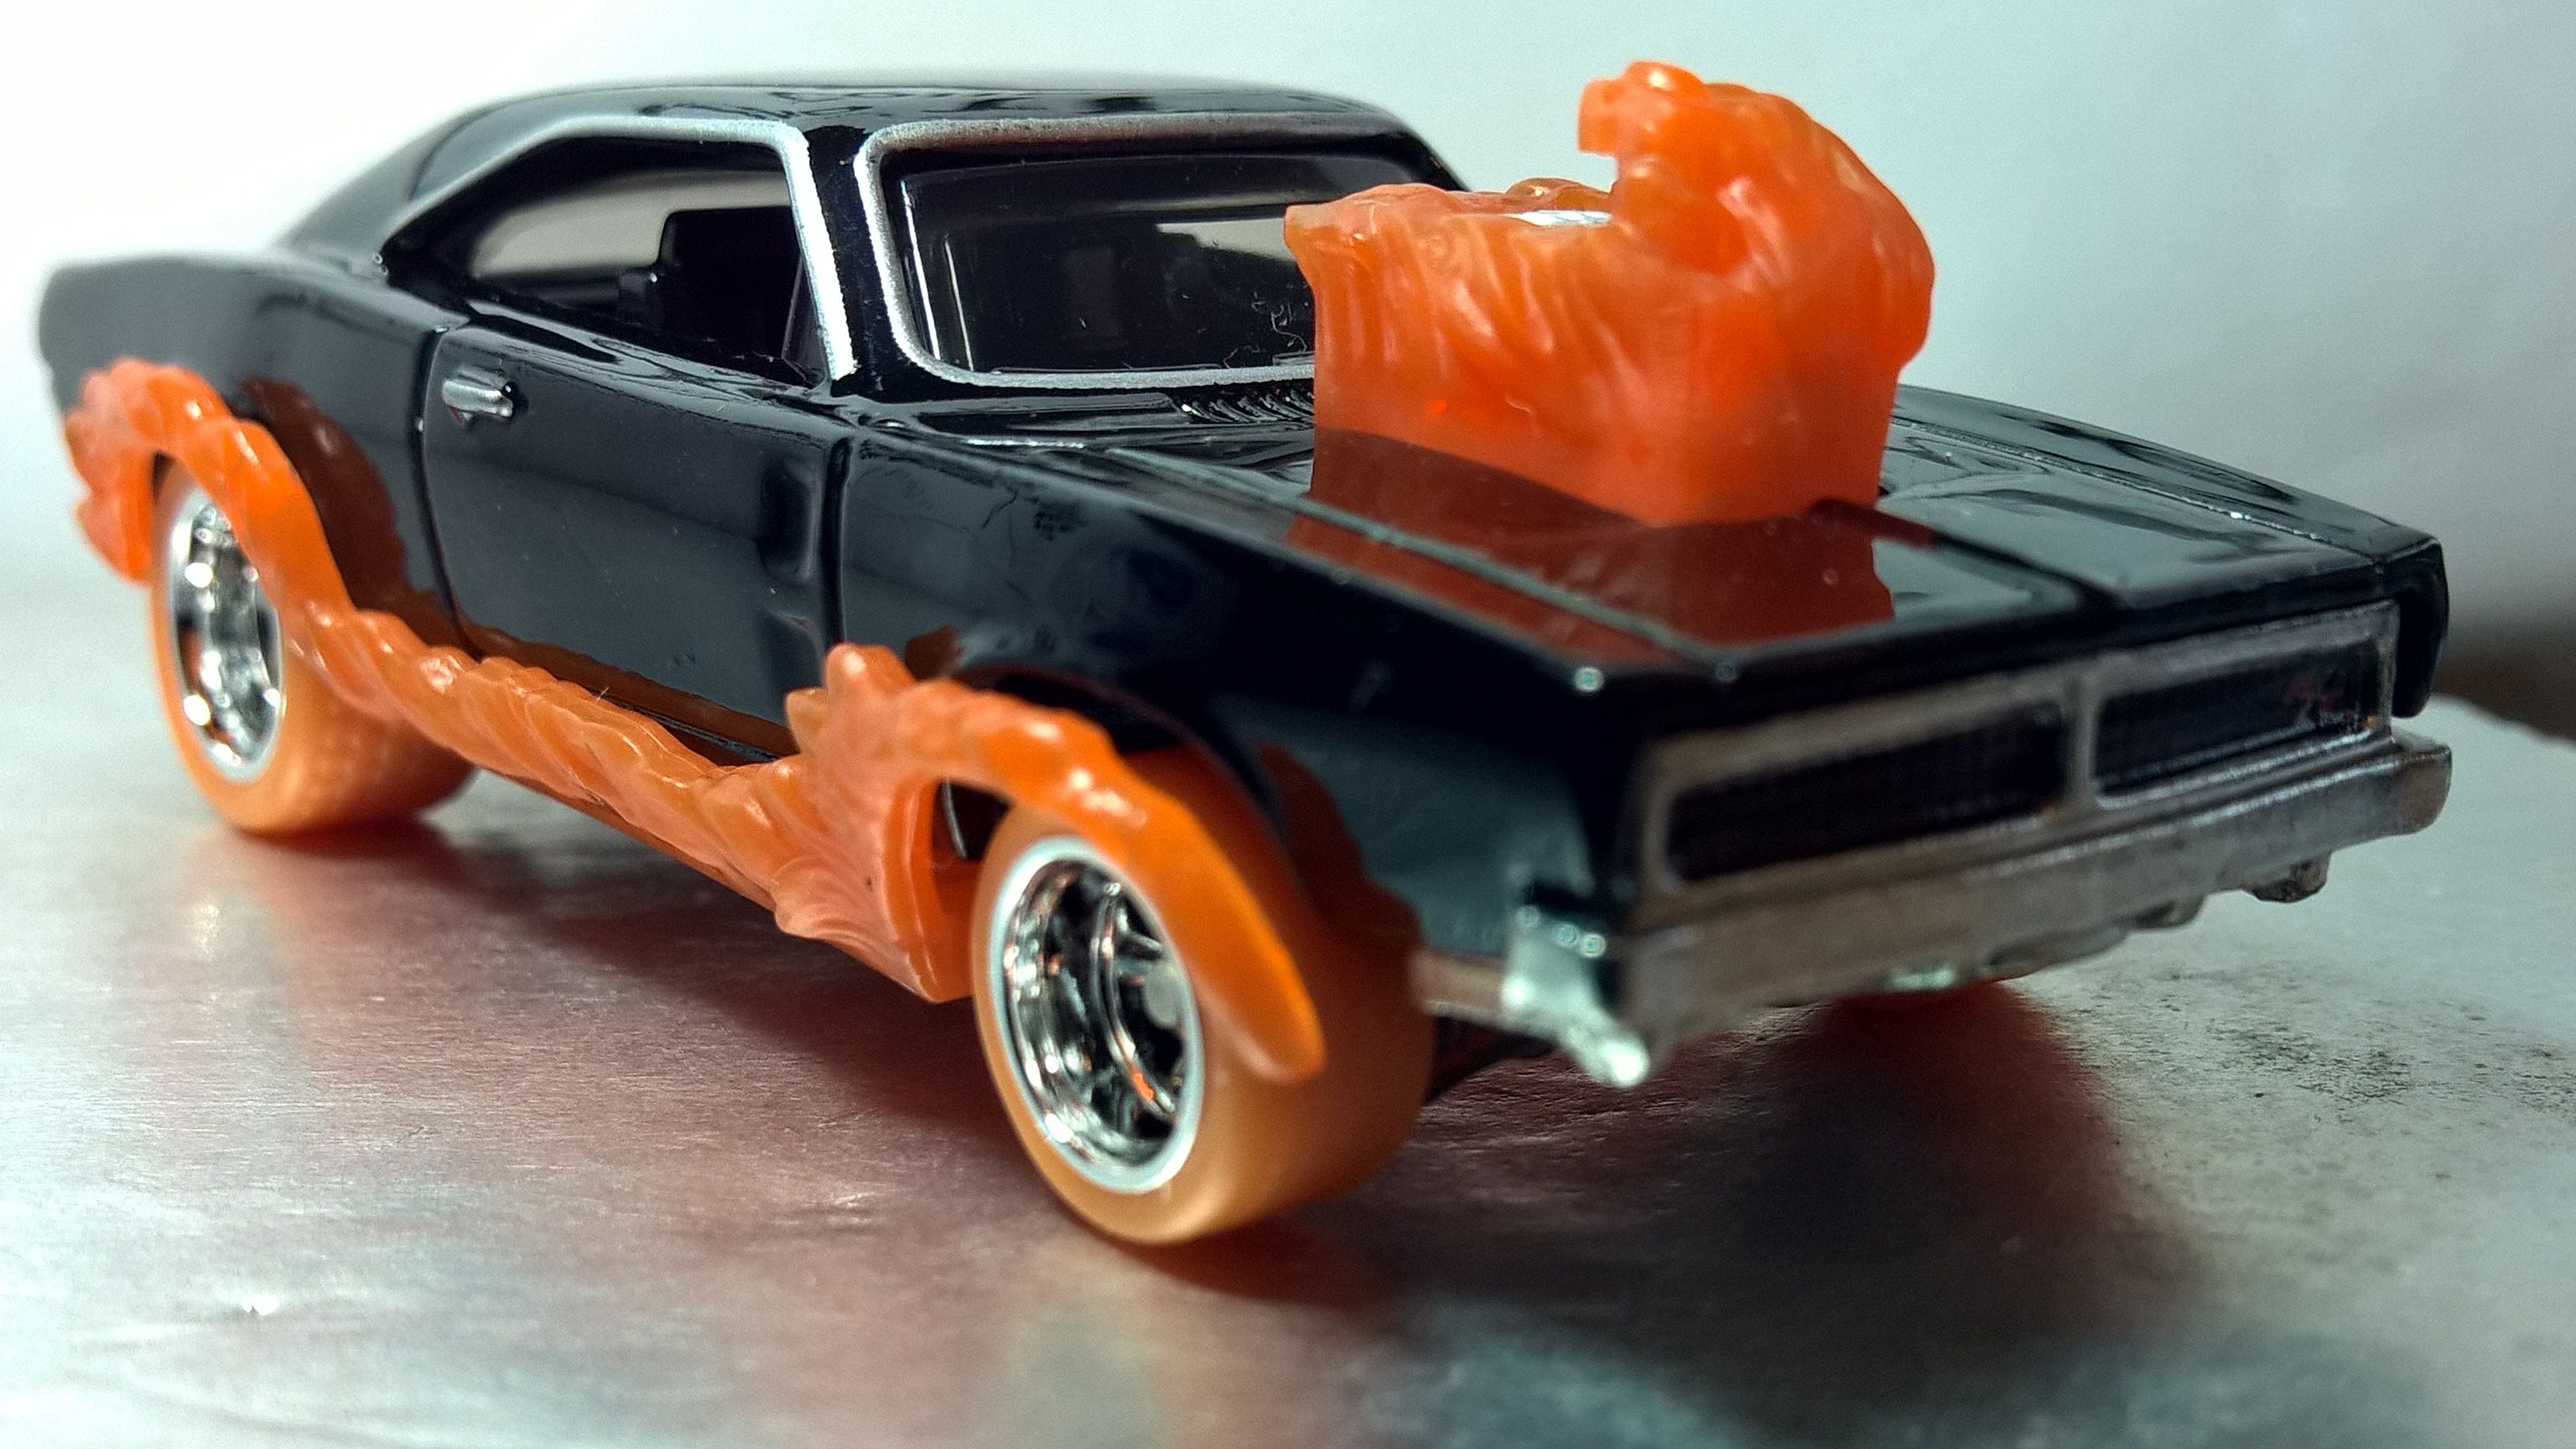 Hot Wheels GHOST RIDER CHARGER 2018 | Hot Wheels Collection